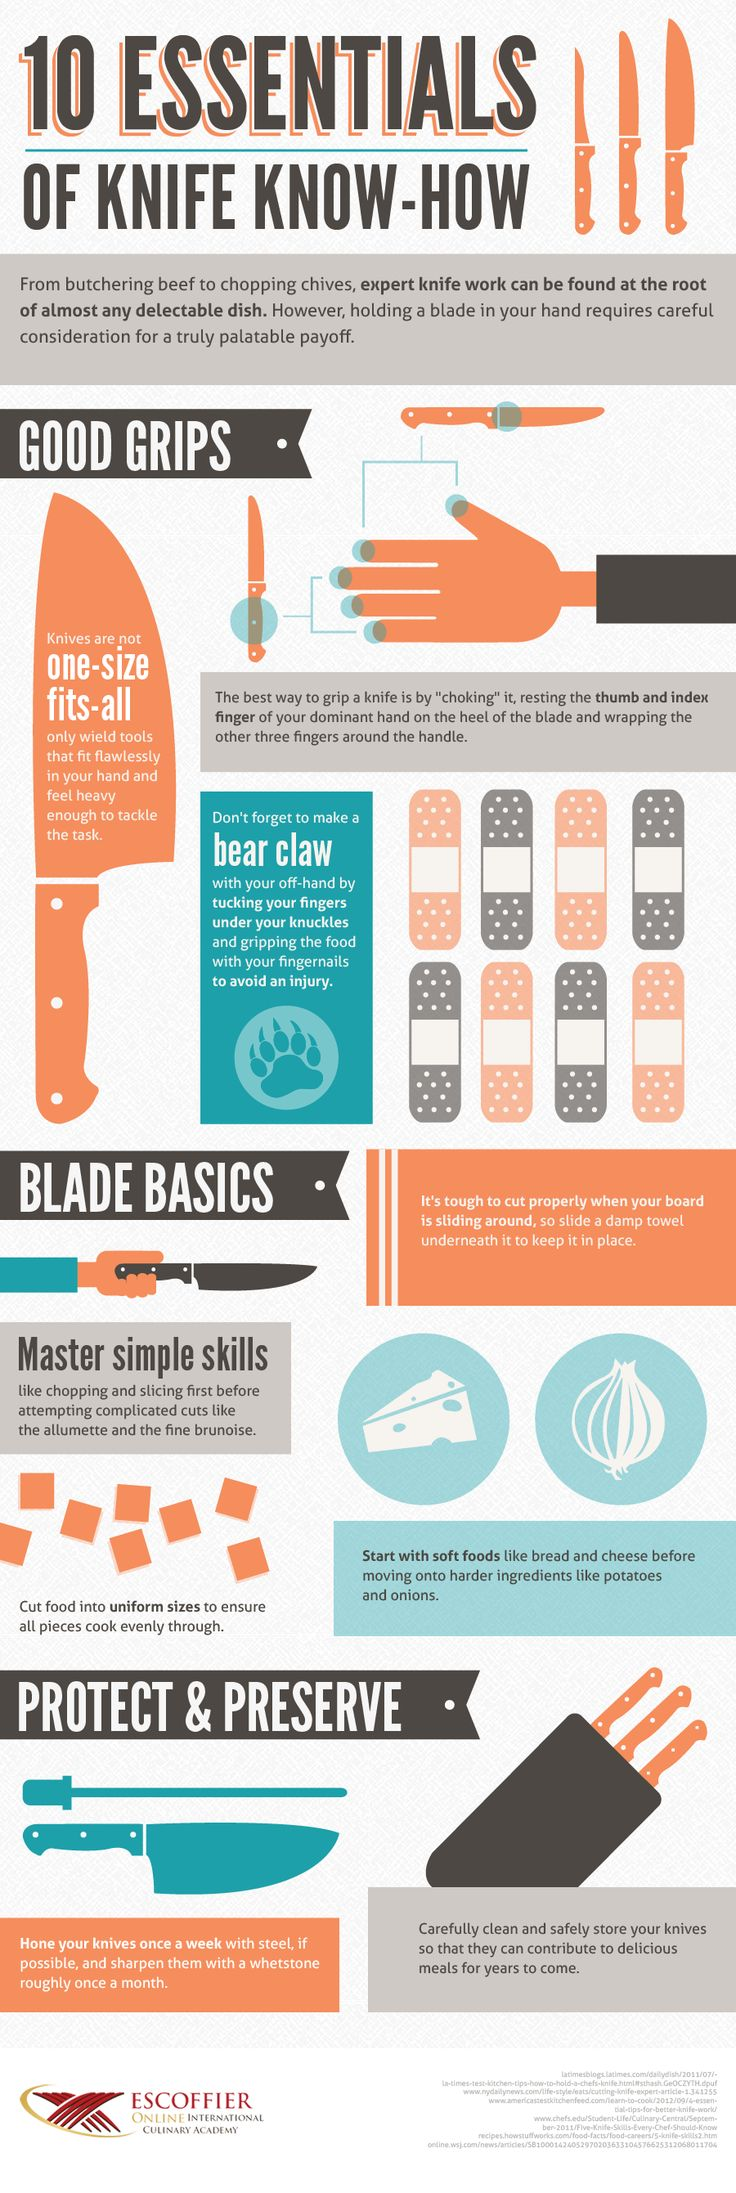 pin by sophie luck on home ec ideas pinterest knife safety tips kitchen knife handling and safety